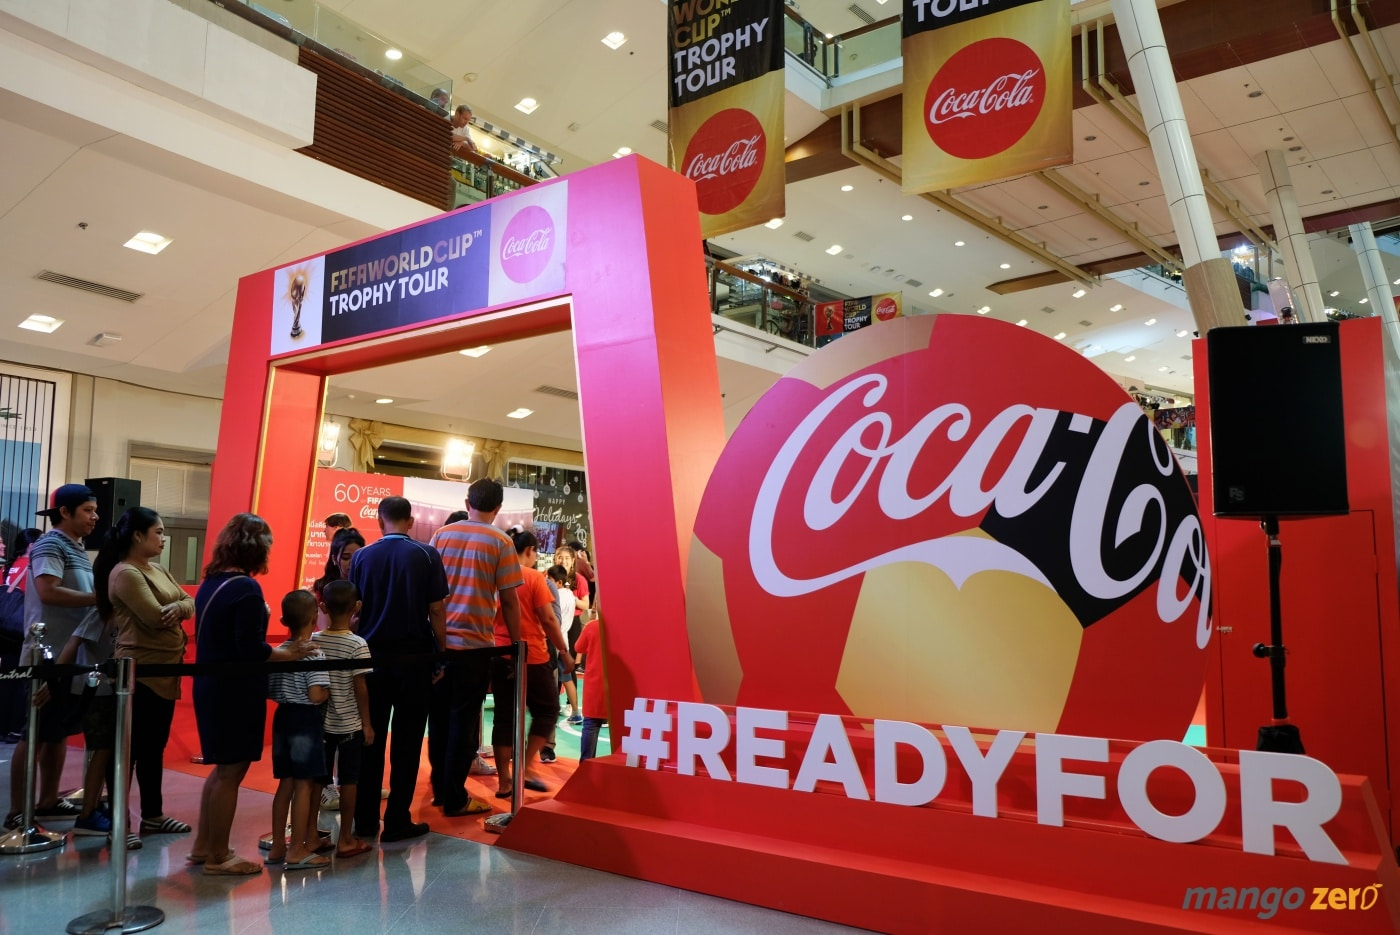 2018-fifa-world-cup-trophy-tour-by-coca-cola-at-phuket-34